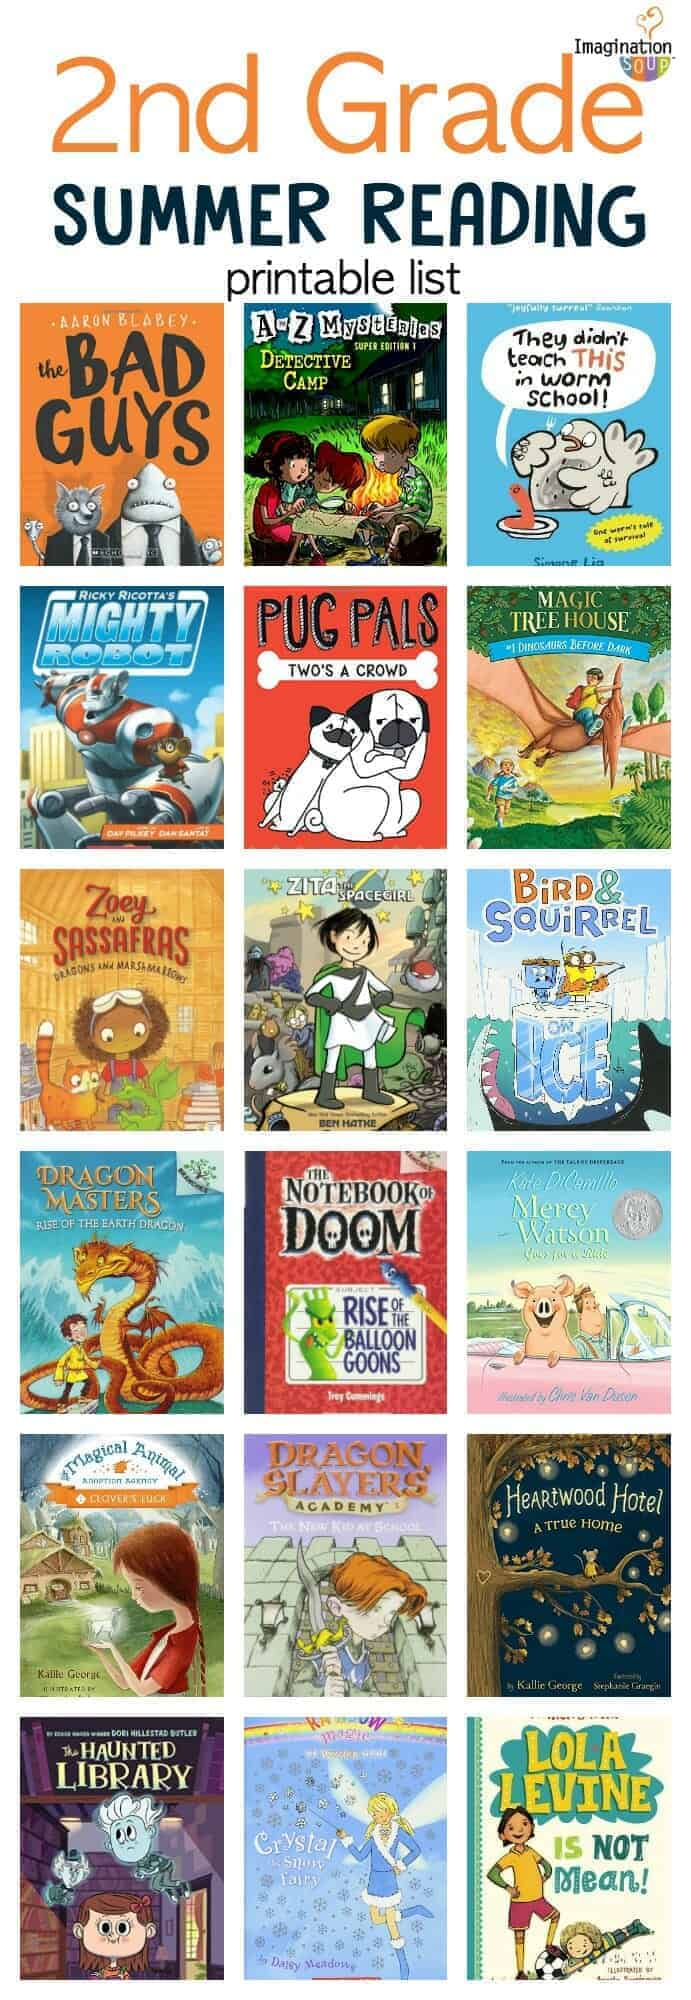 2nd grade summer reading book list for kids